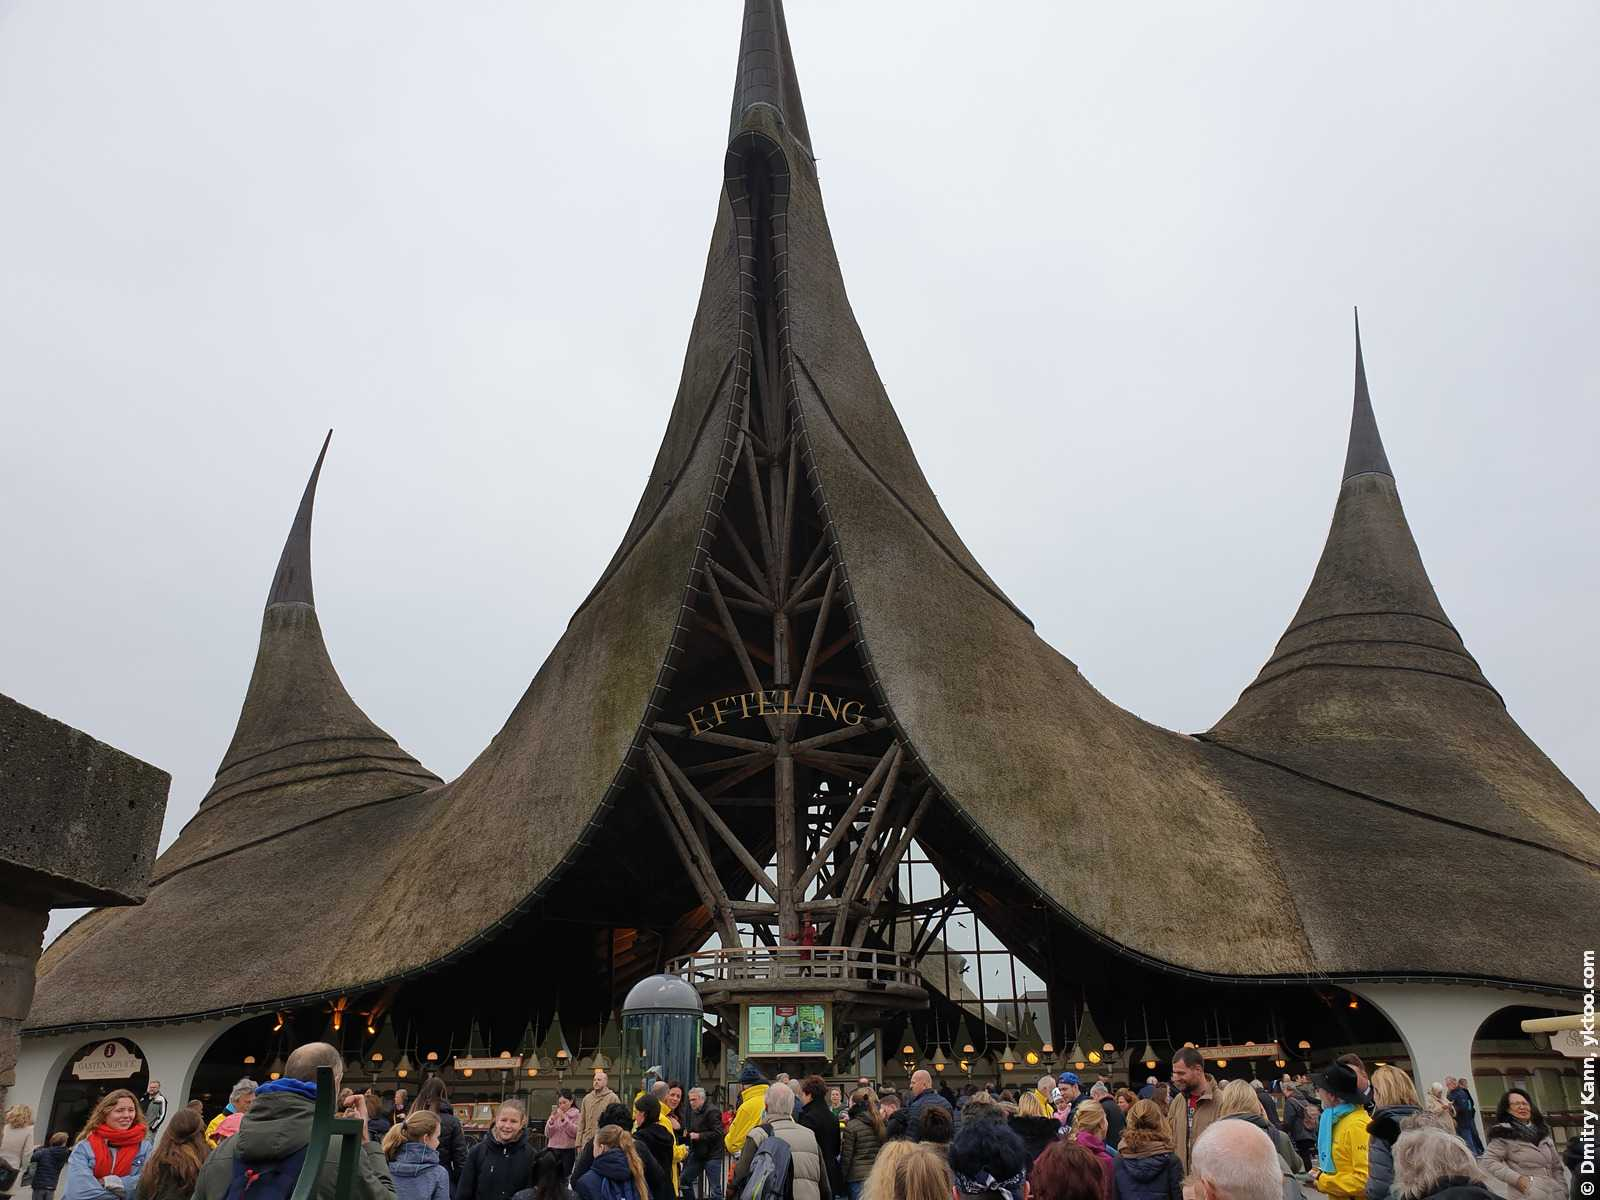 Efteling attraction park.